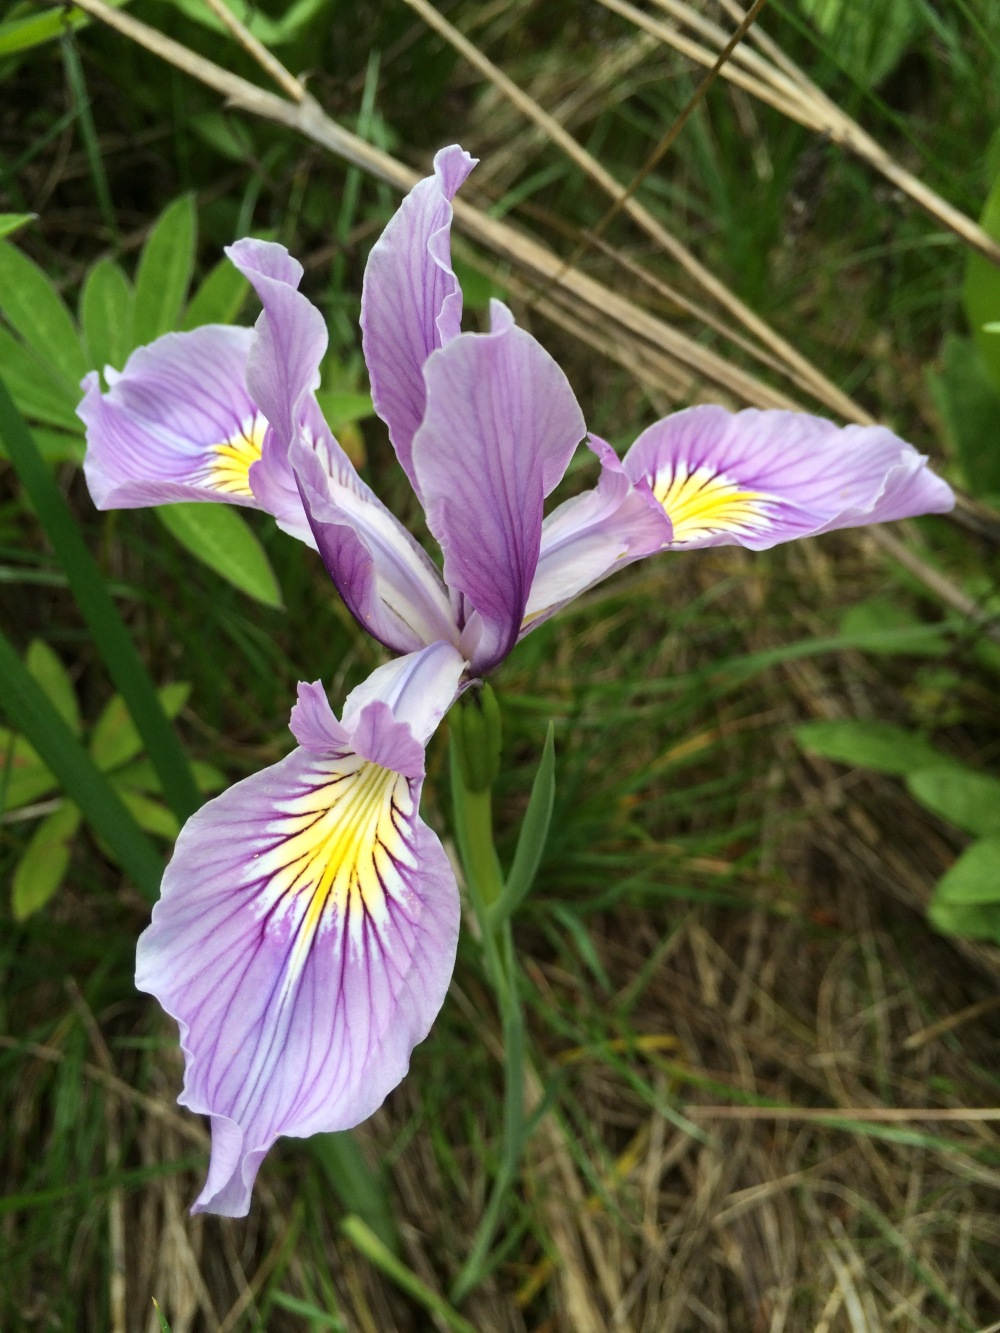 Wild iris seen on Joe's Hike, while I received acupuncture Tuesday in Corbett.